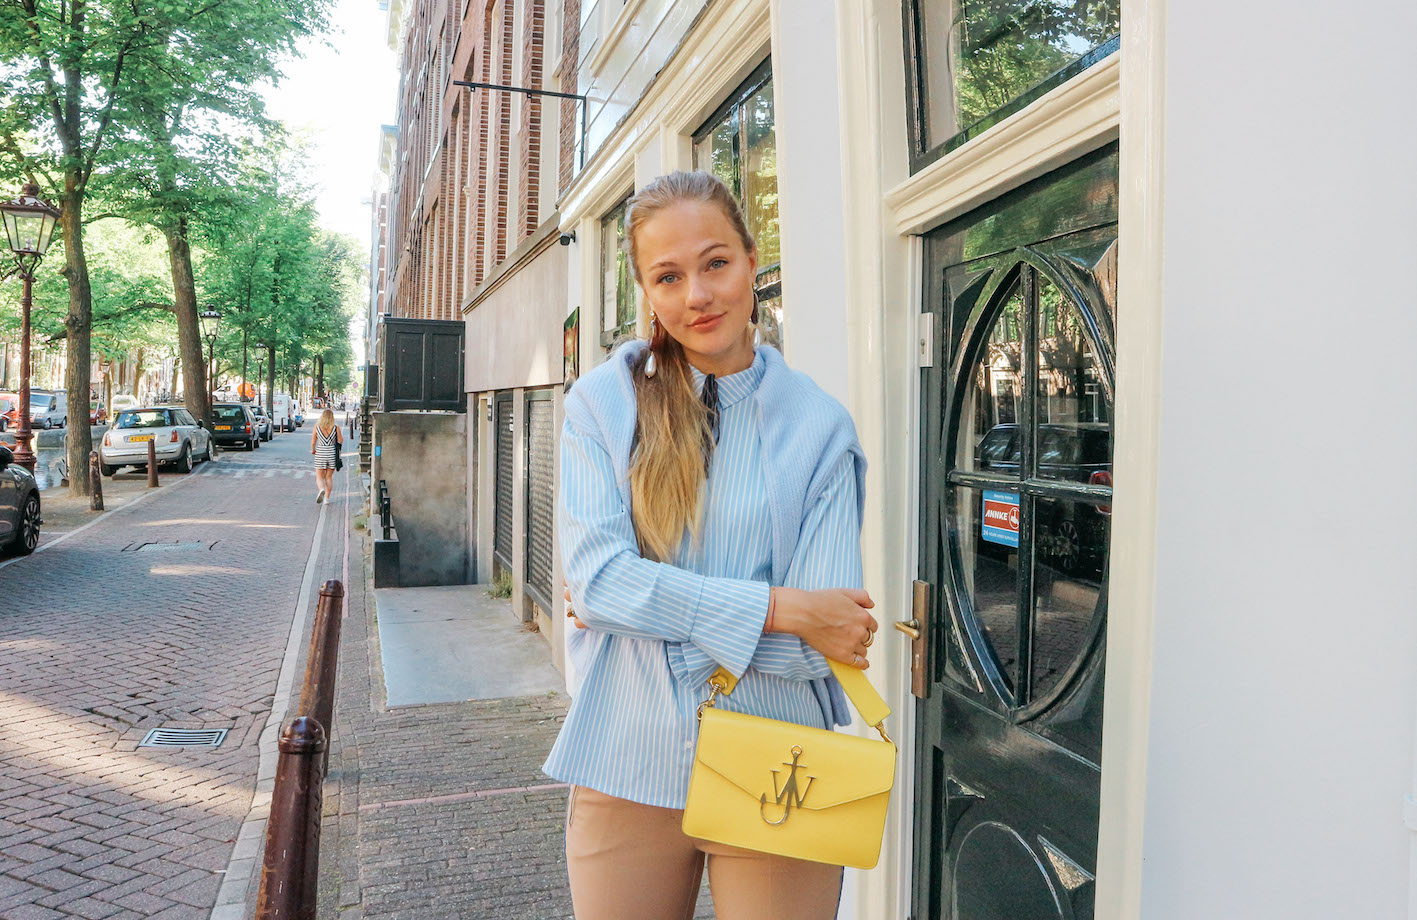 floortjeloves, comma, comma fashion, tod's. tod's sneakers, jw Anderson, j.w. Anderson, j.w. Anderson bag, camel trousers, baby blue shirt